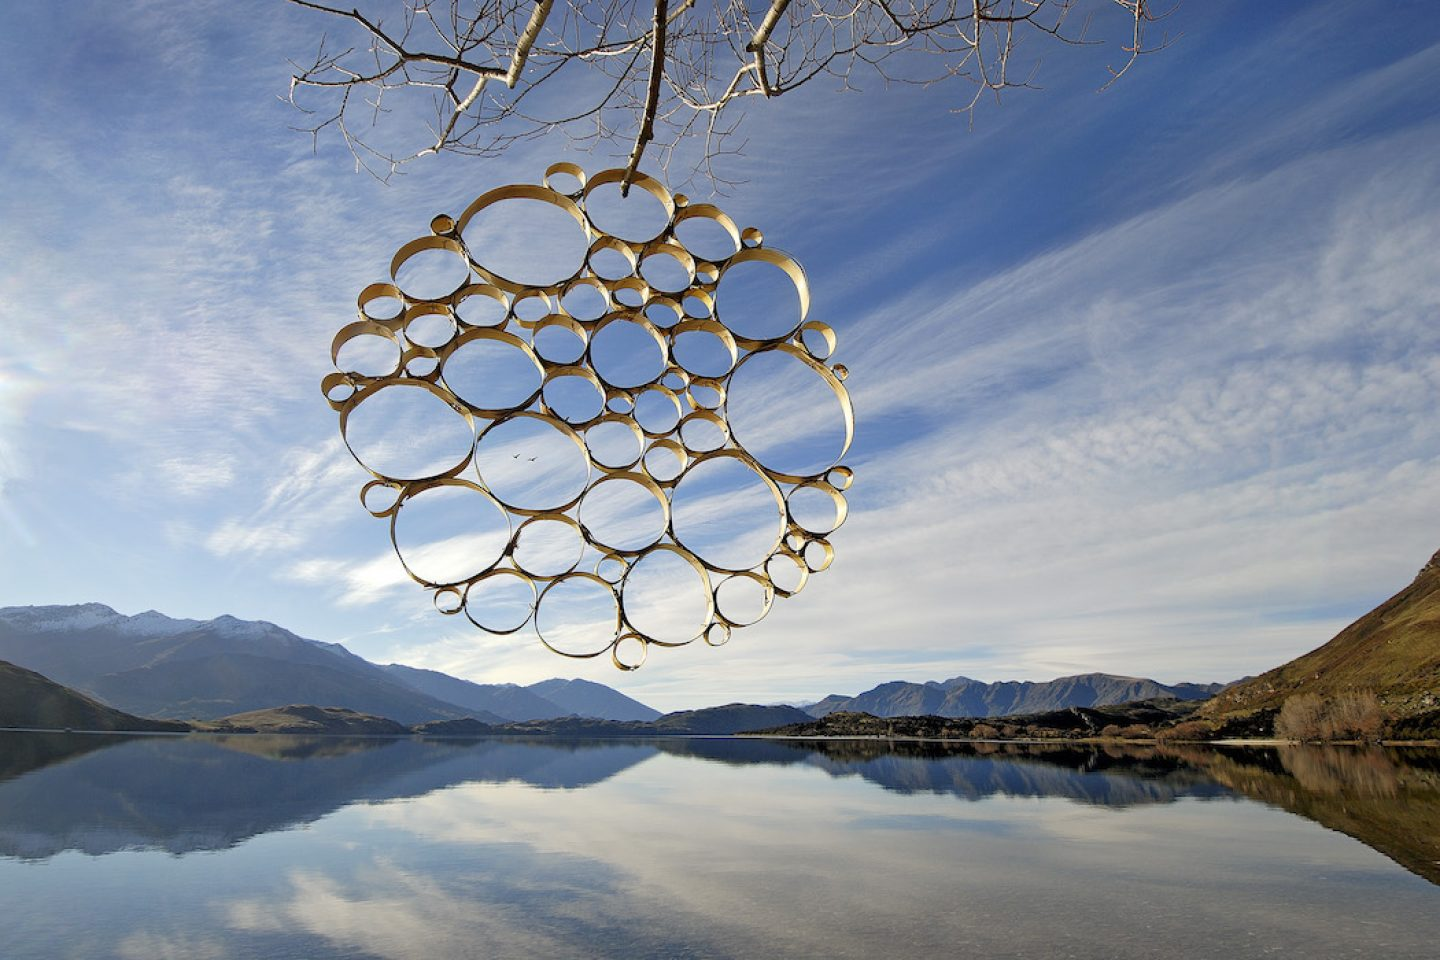 martinhill_art_Circle Of Circles